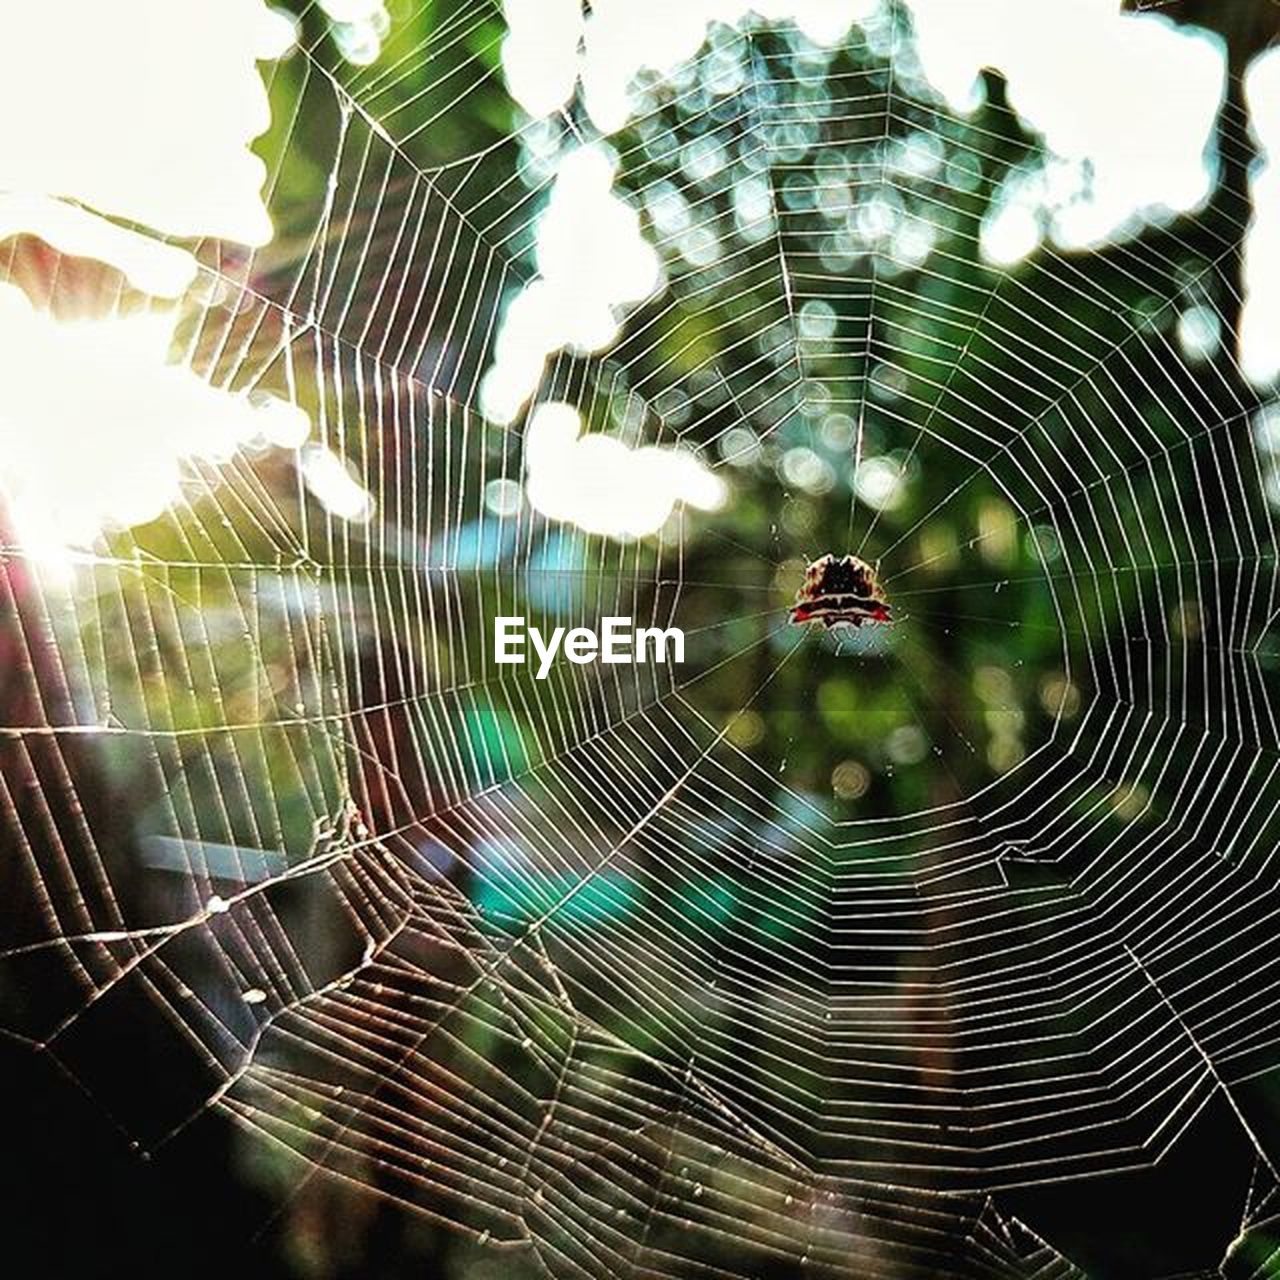 spider web, spider, web, spinning, one animal, animal themes, nature, outdoors, fragility, animals in the wild, focus on foreground, close-up, trapped, no people, insect, day, beauty in nature, animal wildlife